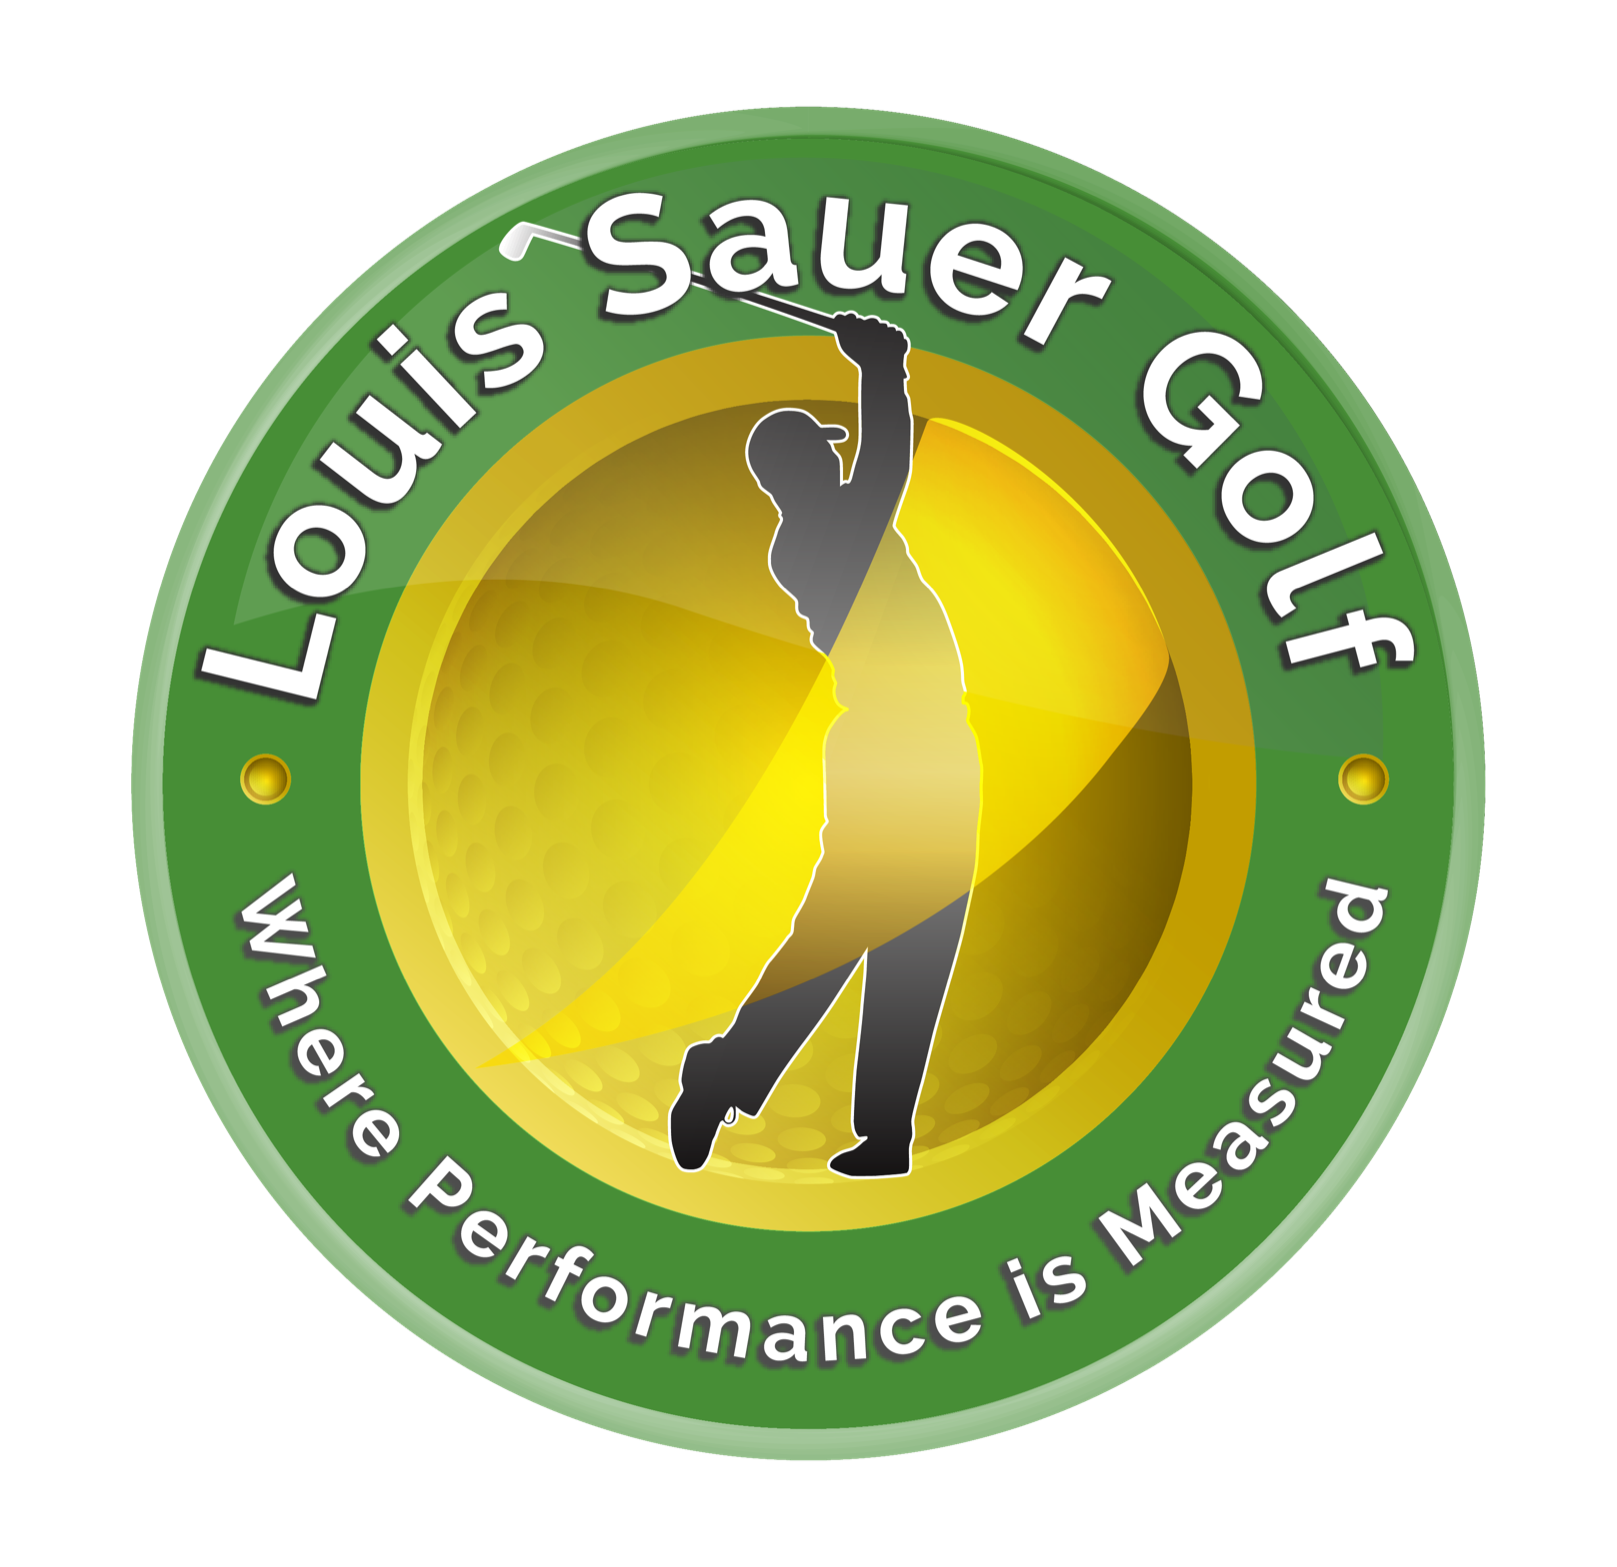 Louis Sauer Golf – Golf Lessons – Northbrook Illinois